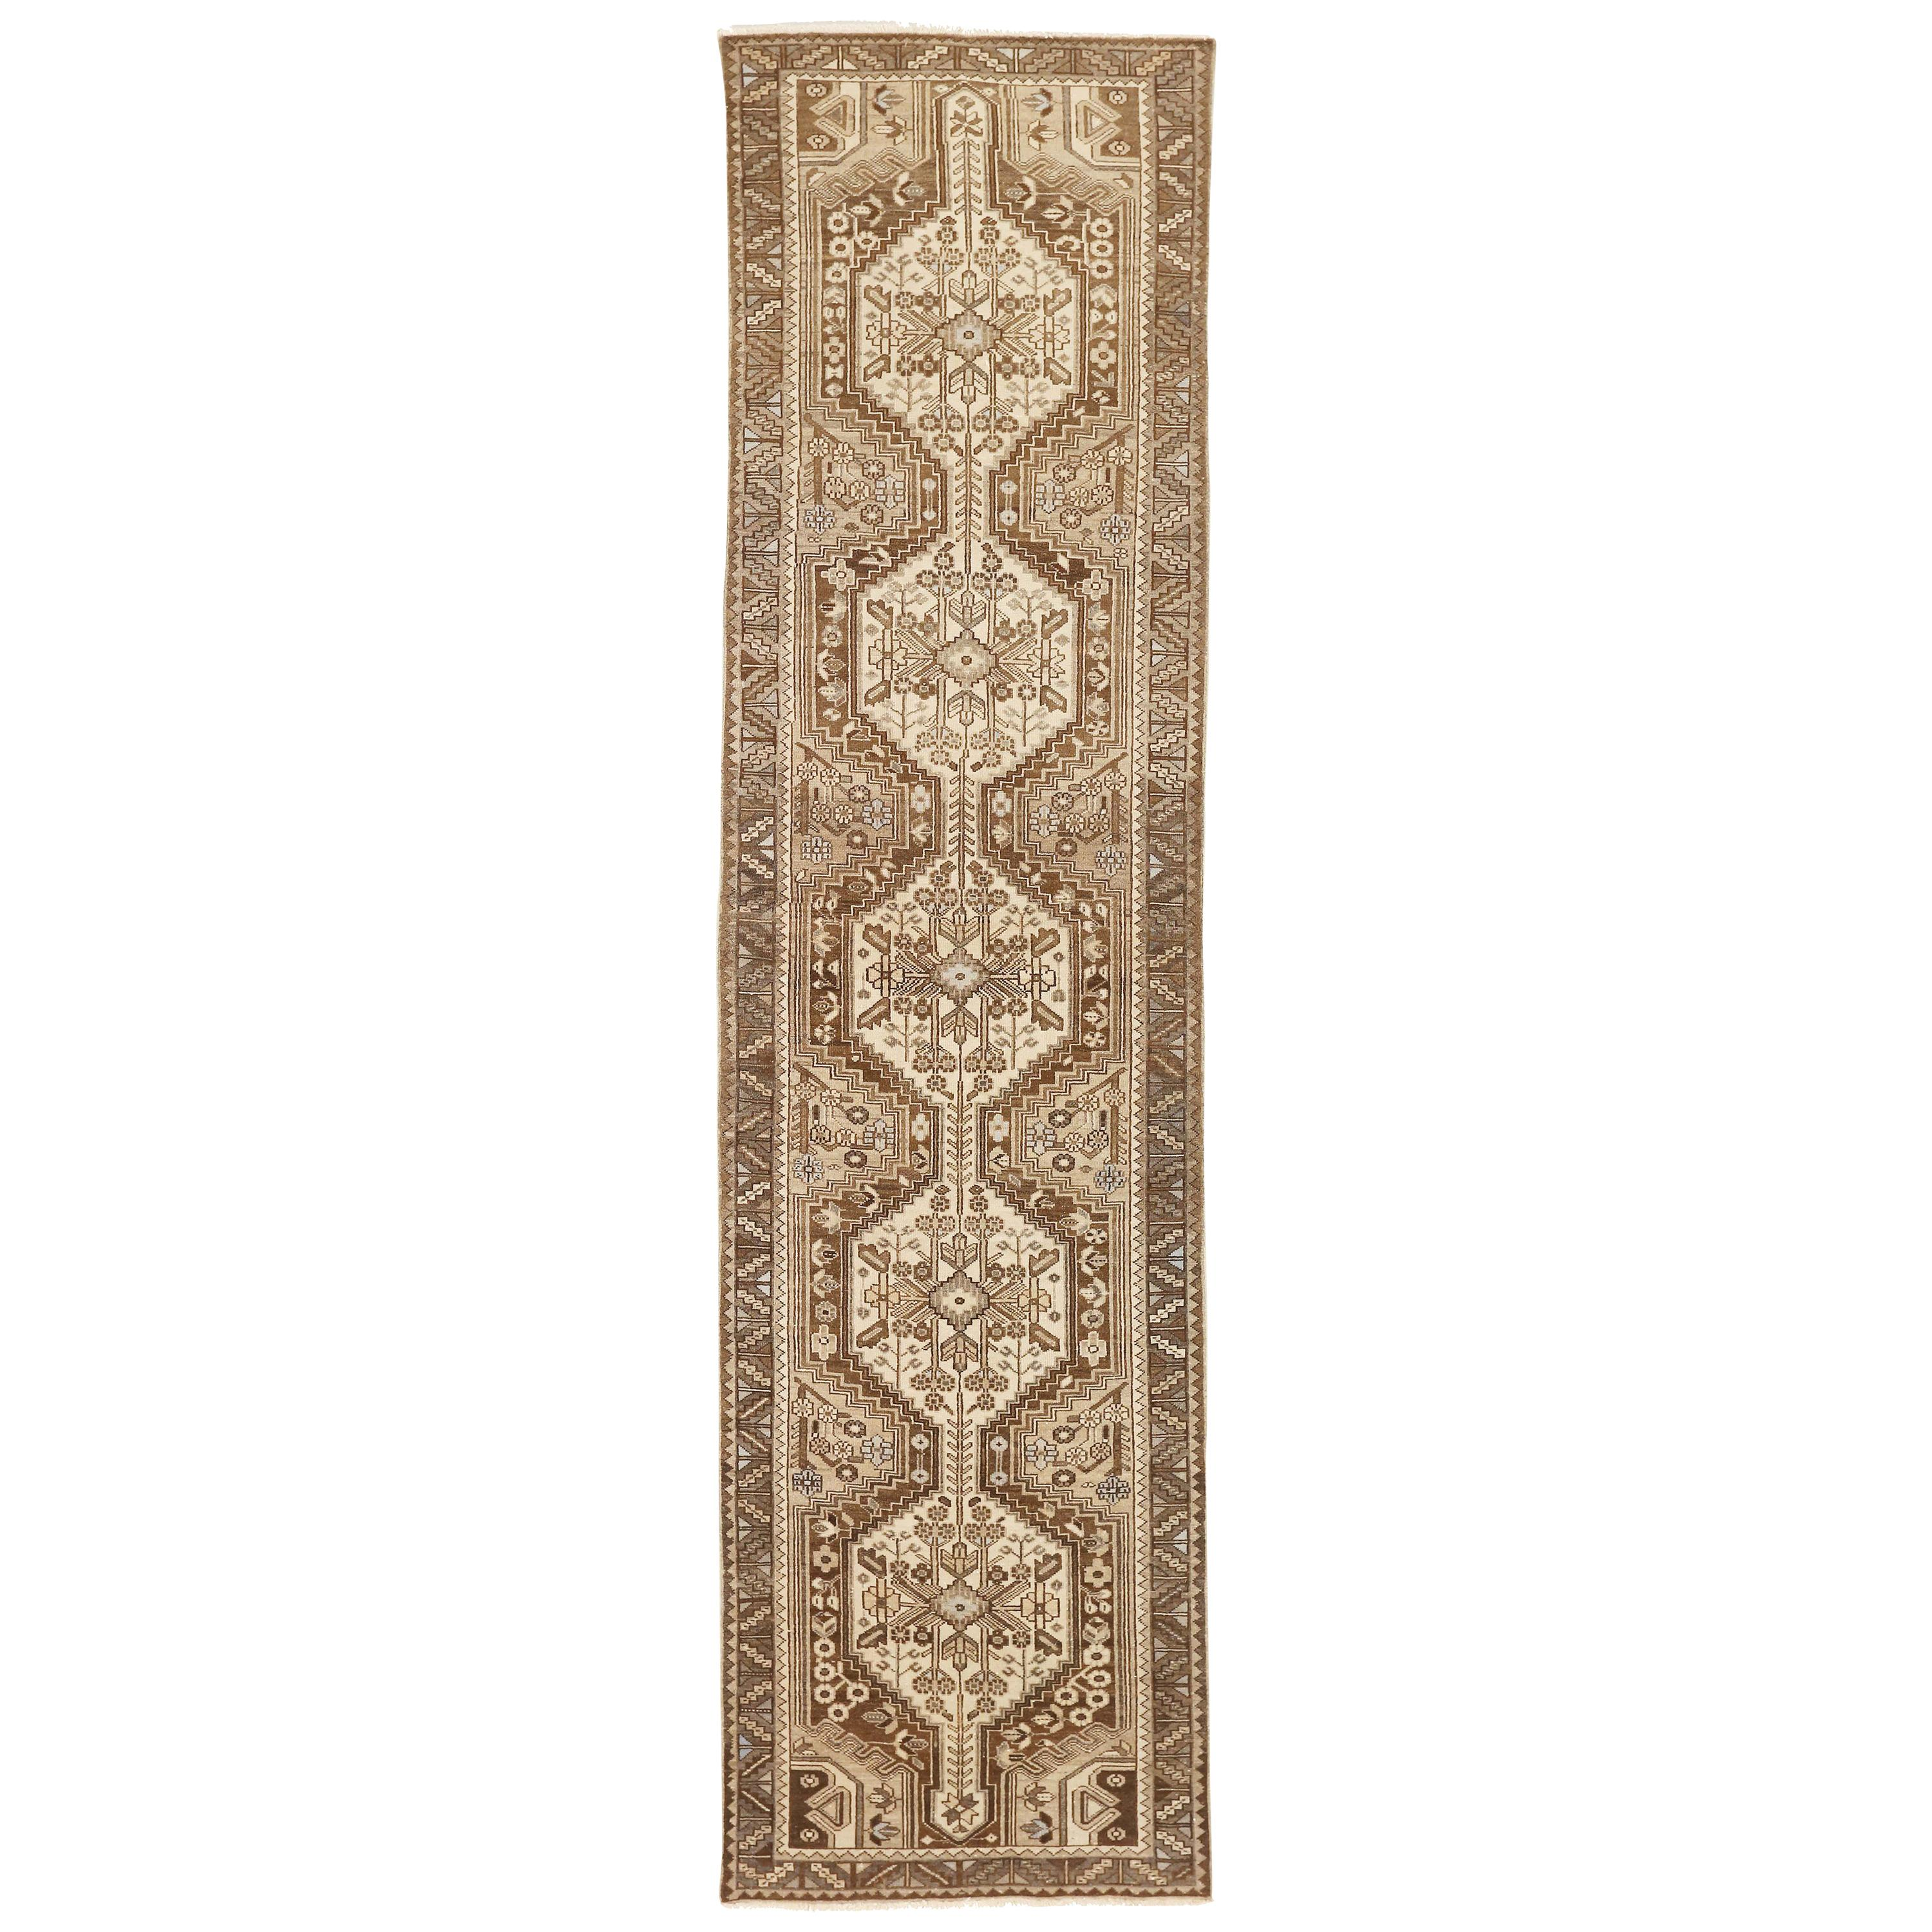 Antique Persian Malayer Runner Rug with White and Brown Floral Patterns on Ivory